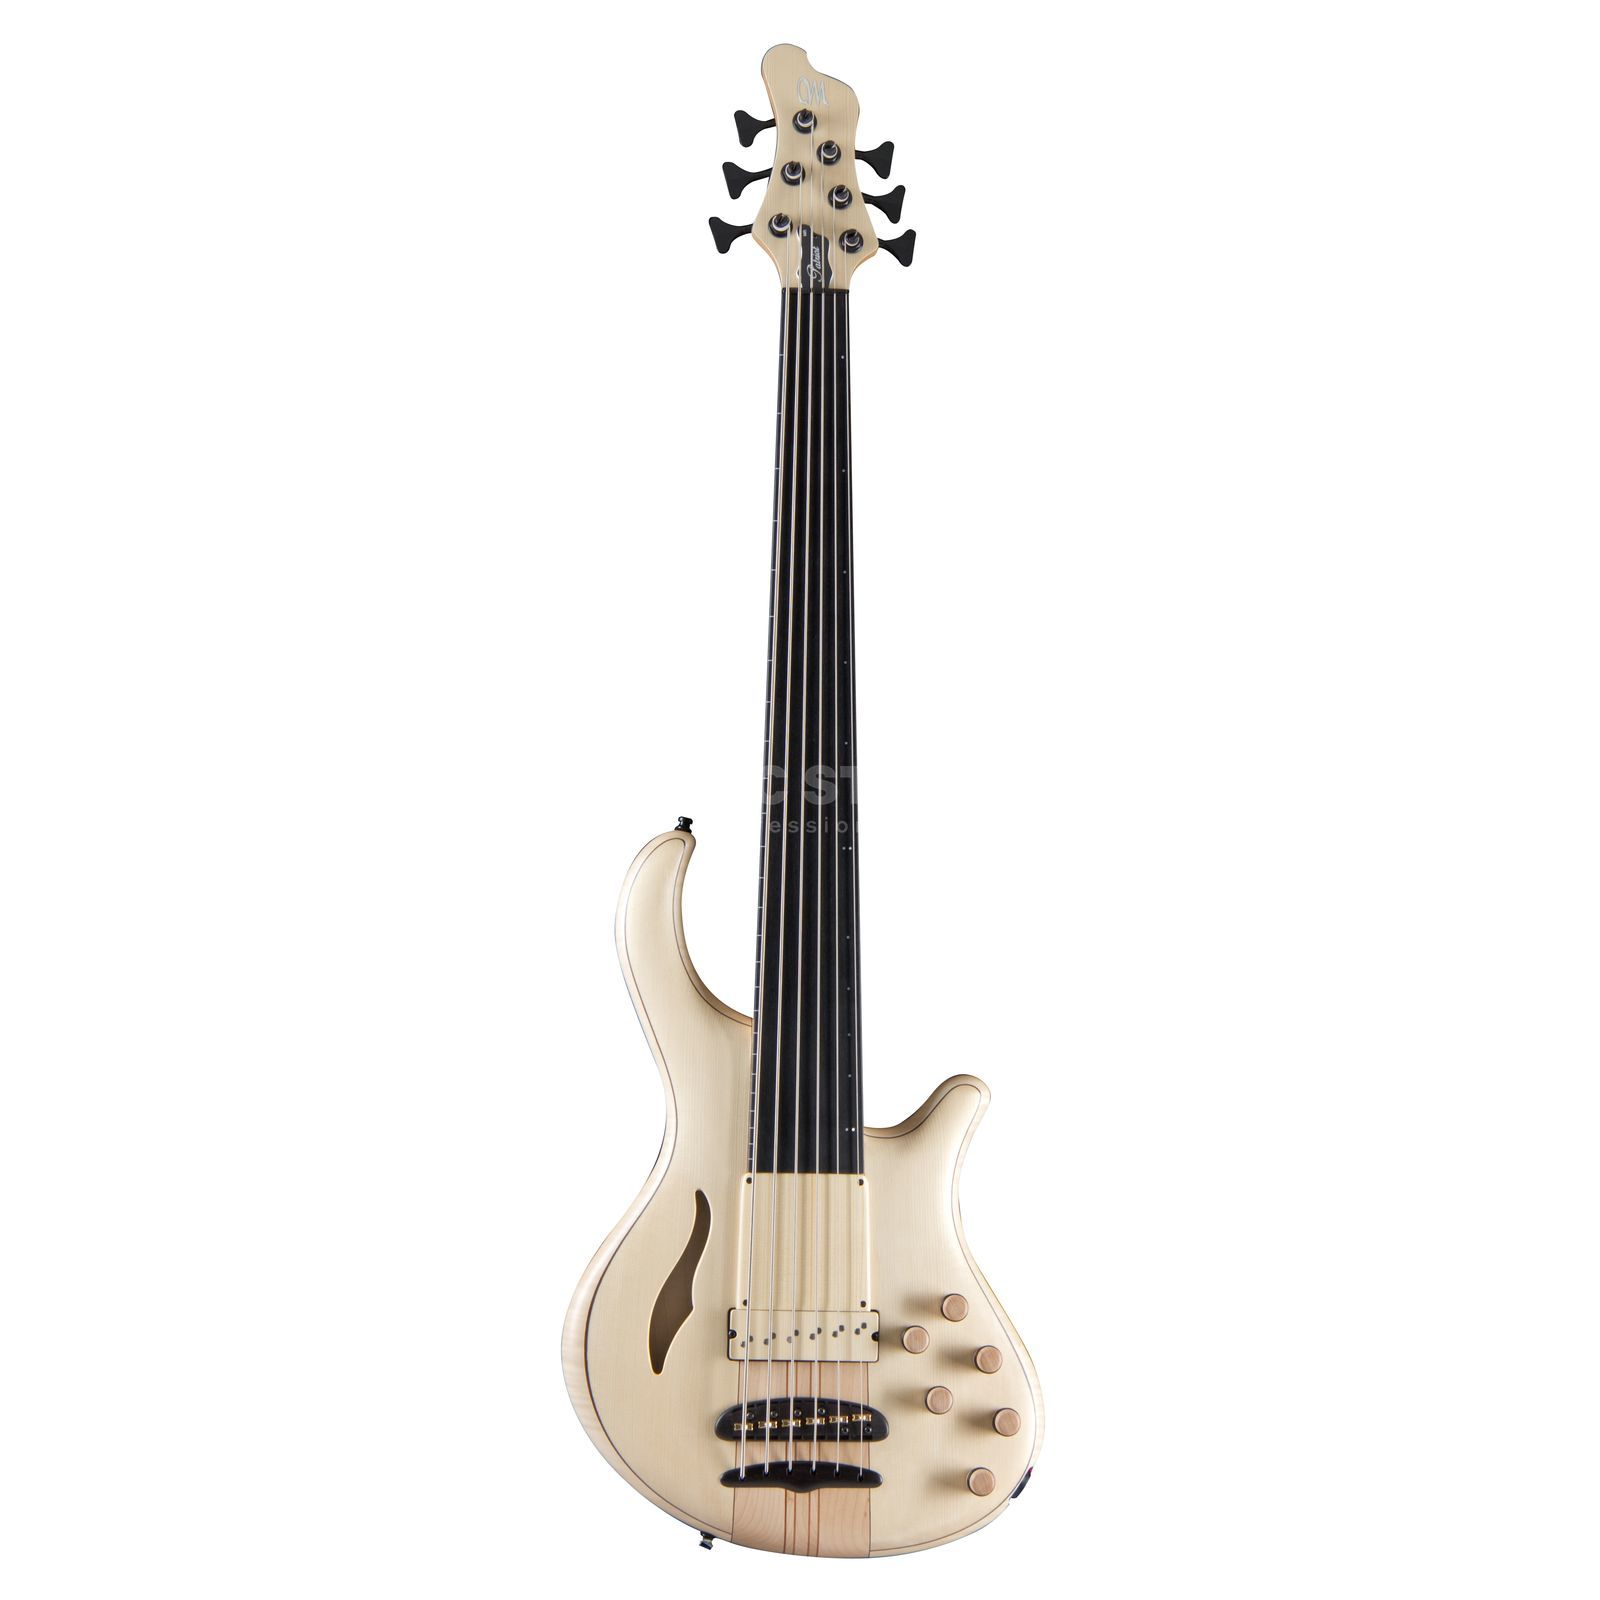 Mayones AS Patriot 6 MR Fretless NT CS Natural Изображение товара